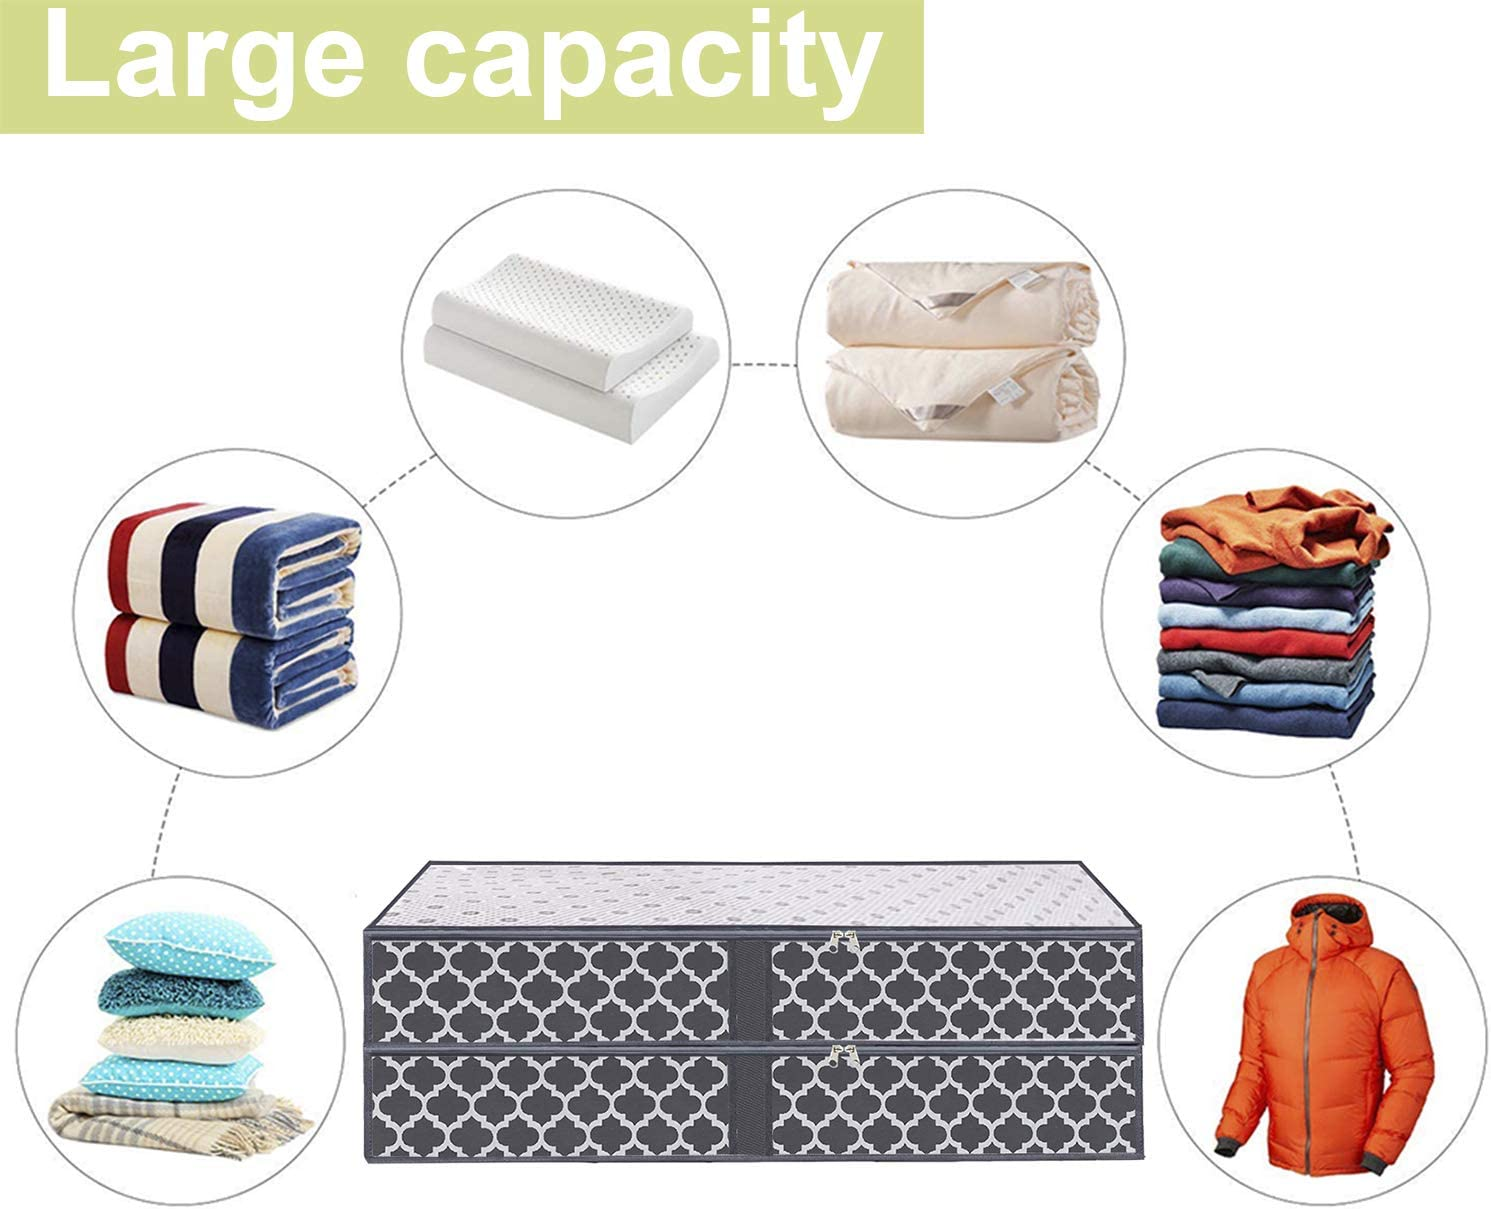 Blue with Lantern Pattern Foldable Comforters Clothes Blankets Storage Bags with Clear Plastic Lids 2 Zippers and 4 Handles Large Underbed Storage Bags Organizer Containers- 2 Pack